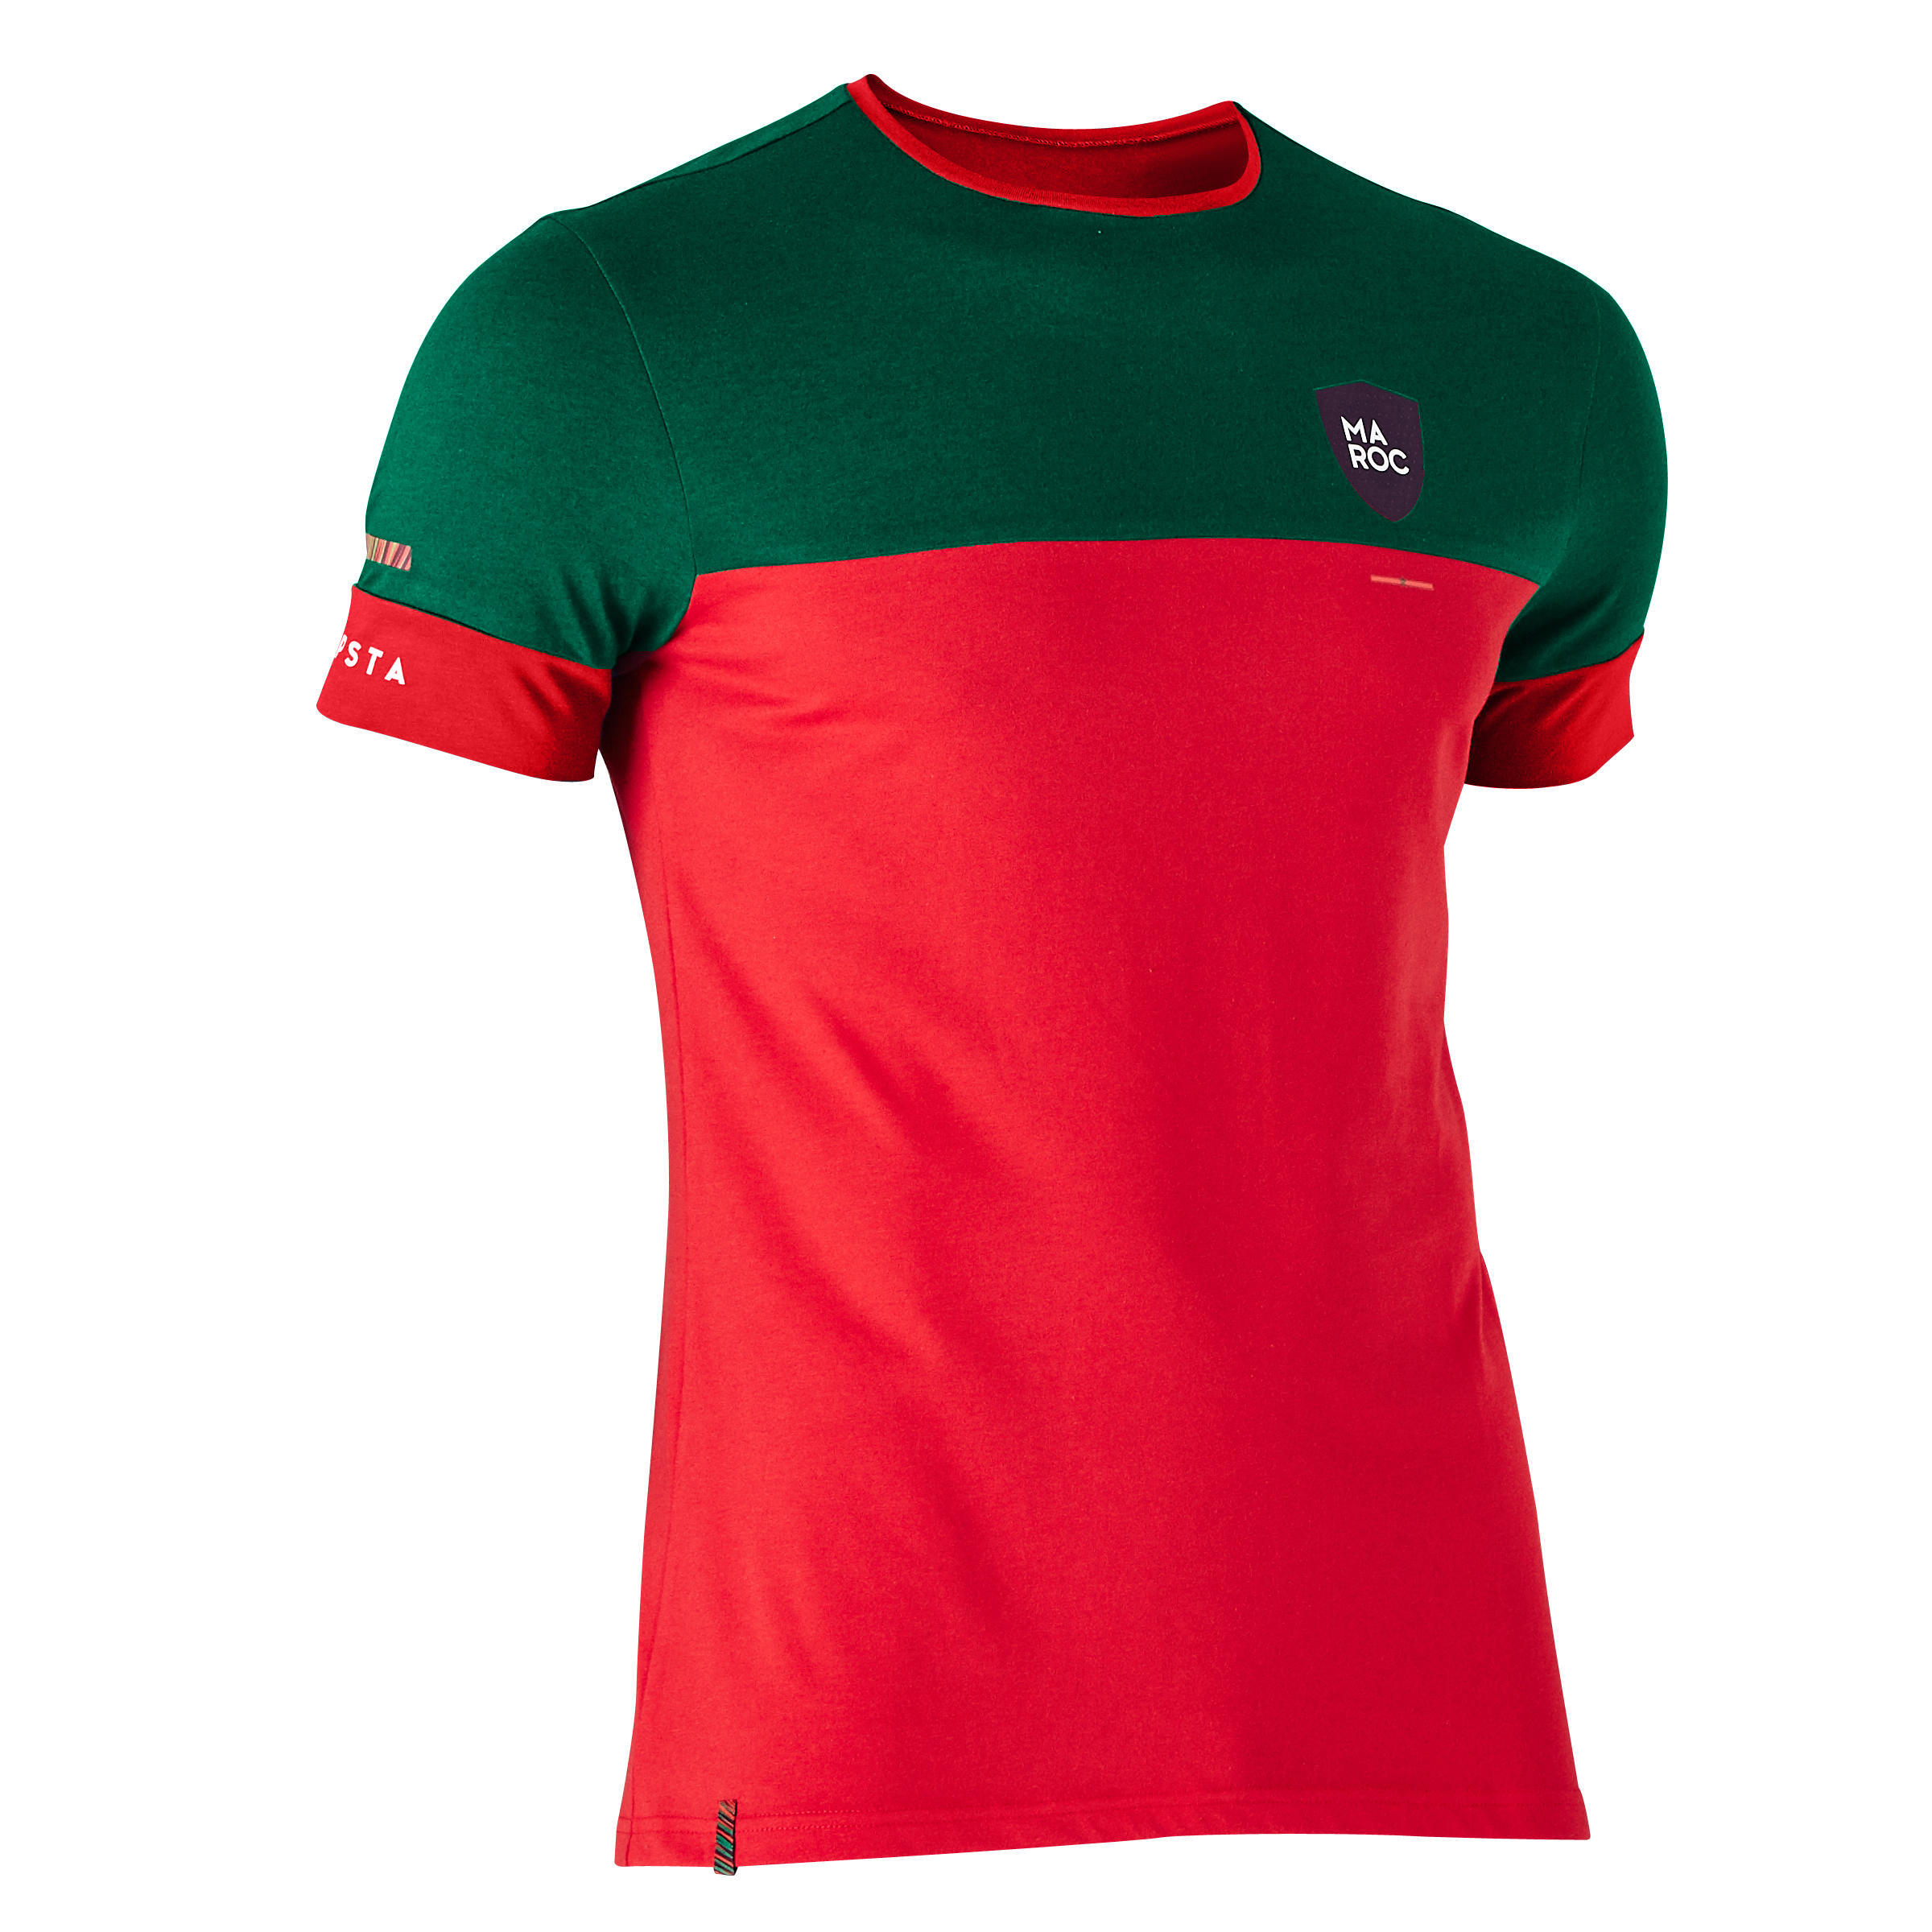 T shirt de <strong>football</strong> adulte ff100 maroc kipsta